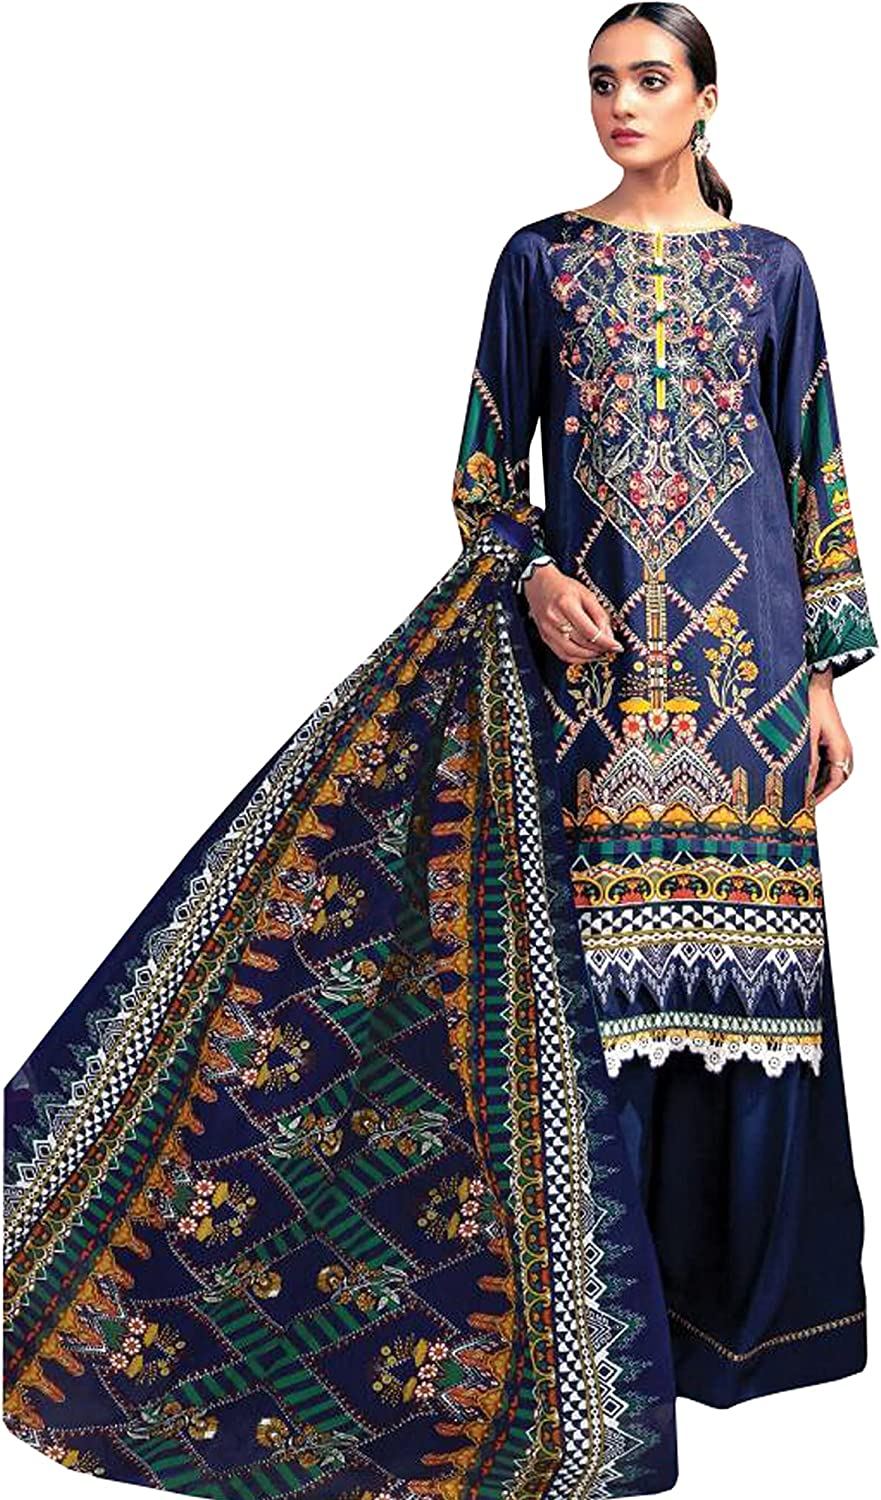 Ready to Wear Indian Designer Stylish Salwar Kameez for Women Trouser Plazzo Suits with Dupatta